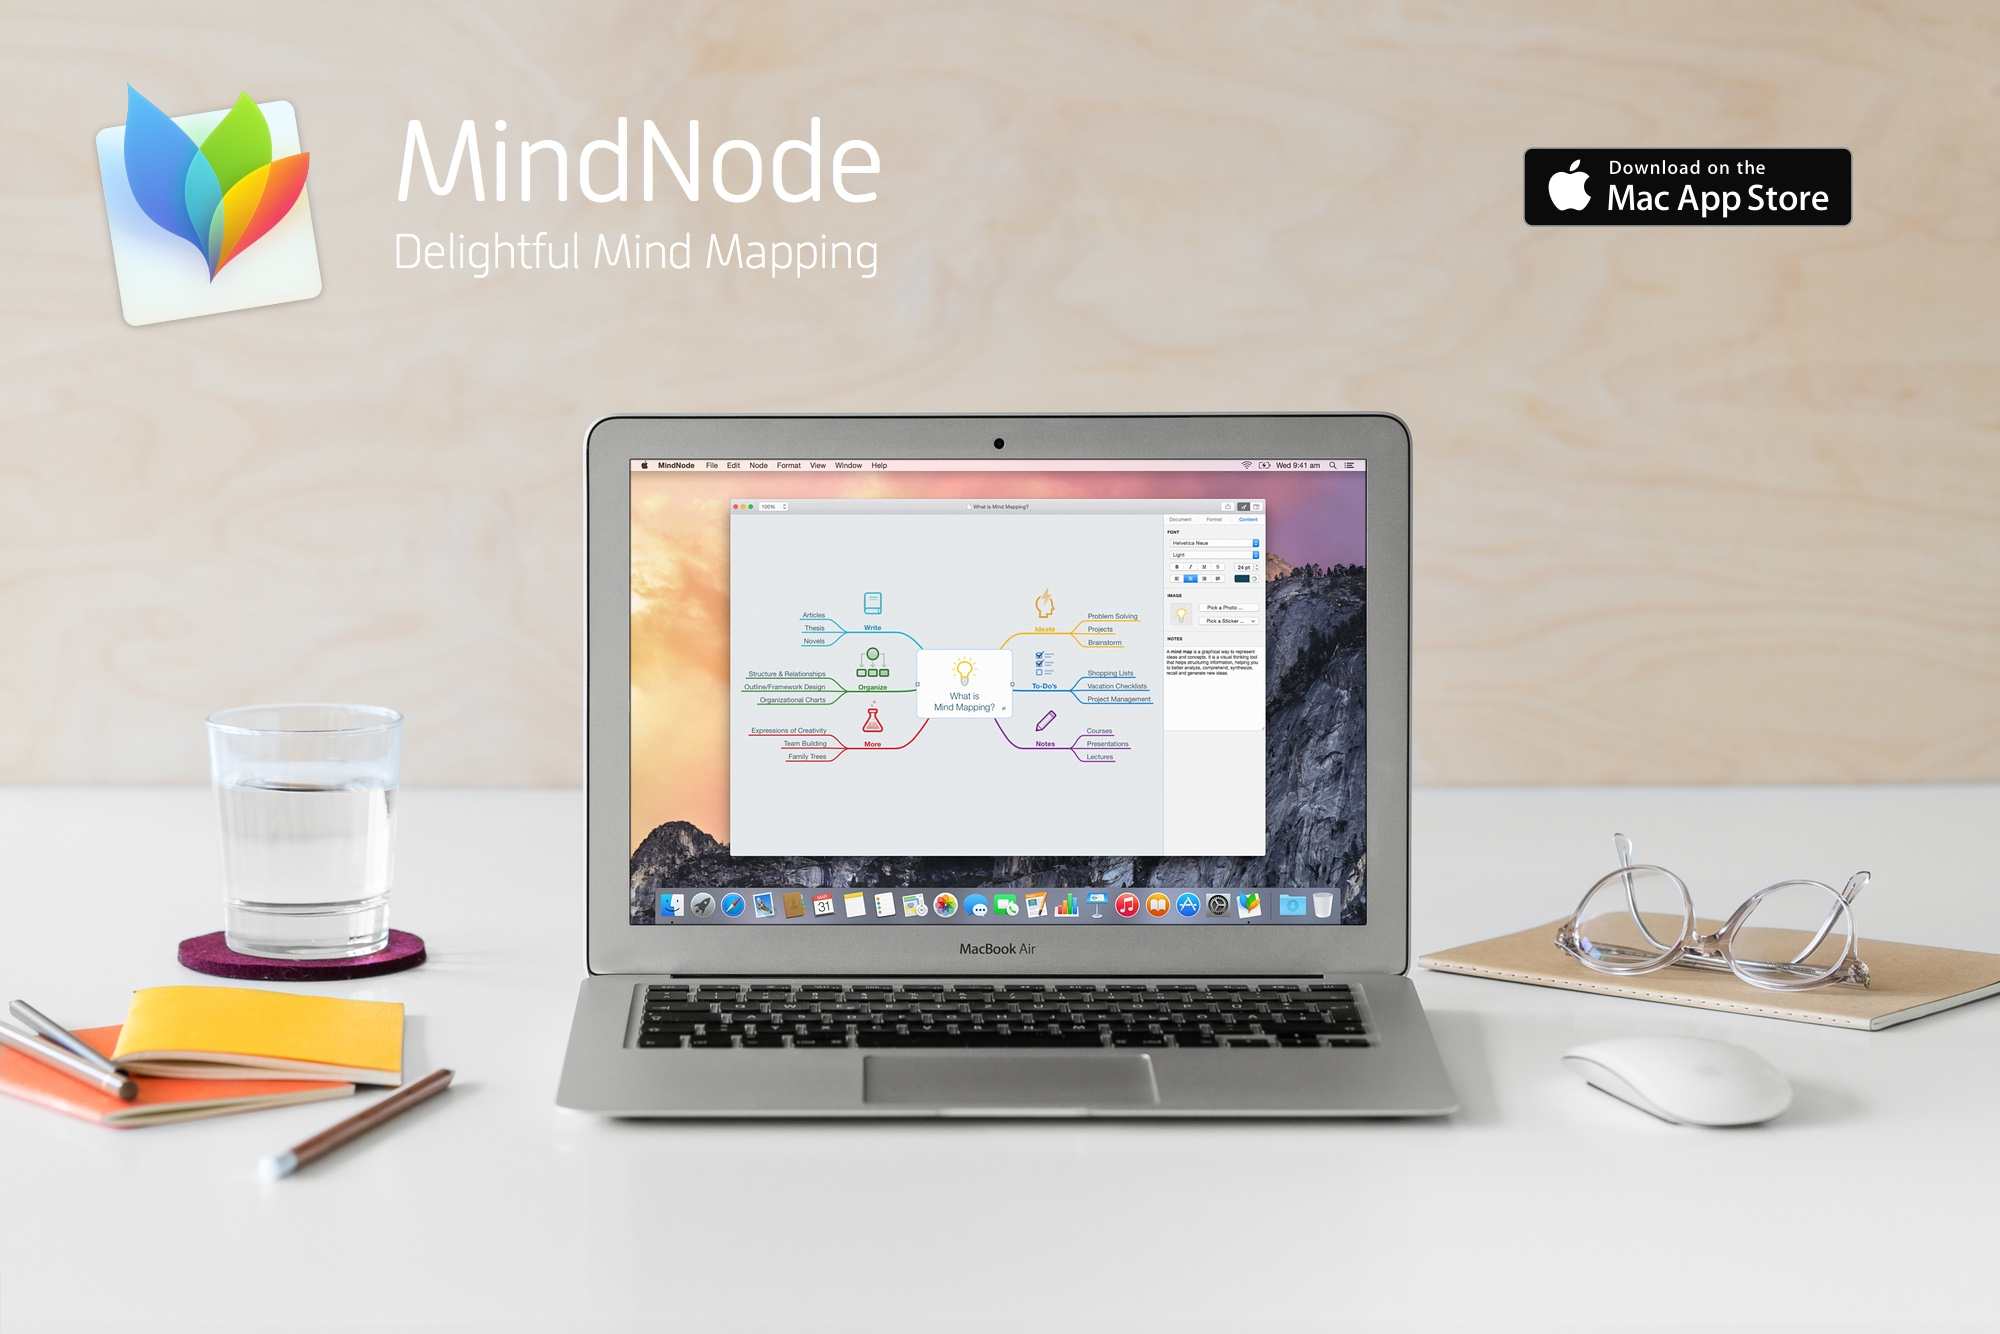 mindnode-2.0-for-mac-macbook-air-new